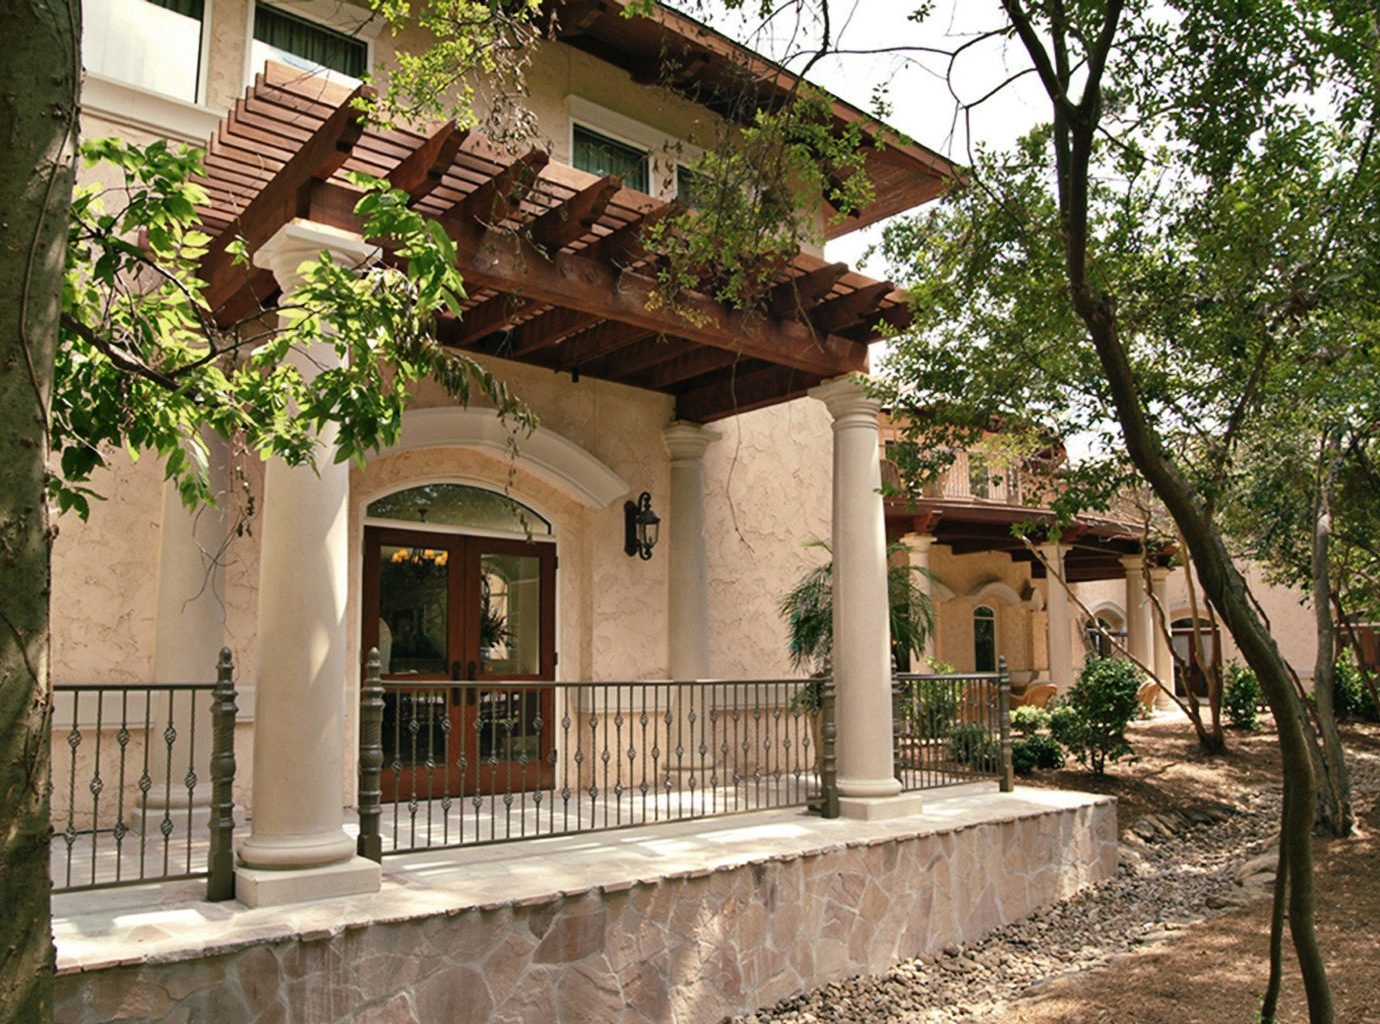 Elegant Exterior Jetsetter Guides Rustic tree outdoor ground property building house neighbourhood estate home Courtyard mansion Resort shrine hacienda Village temple outdoor structure Villa stone